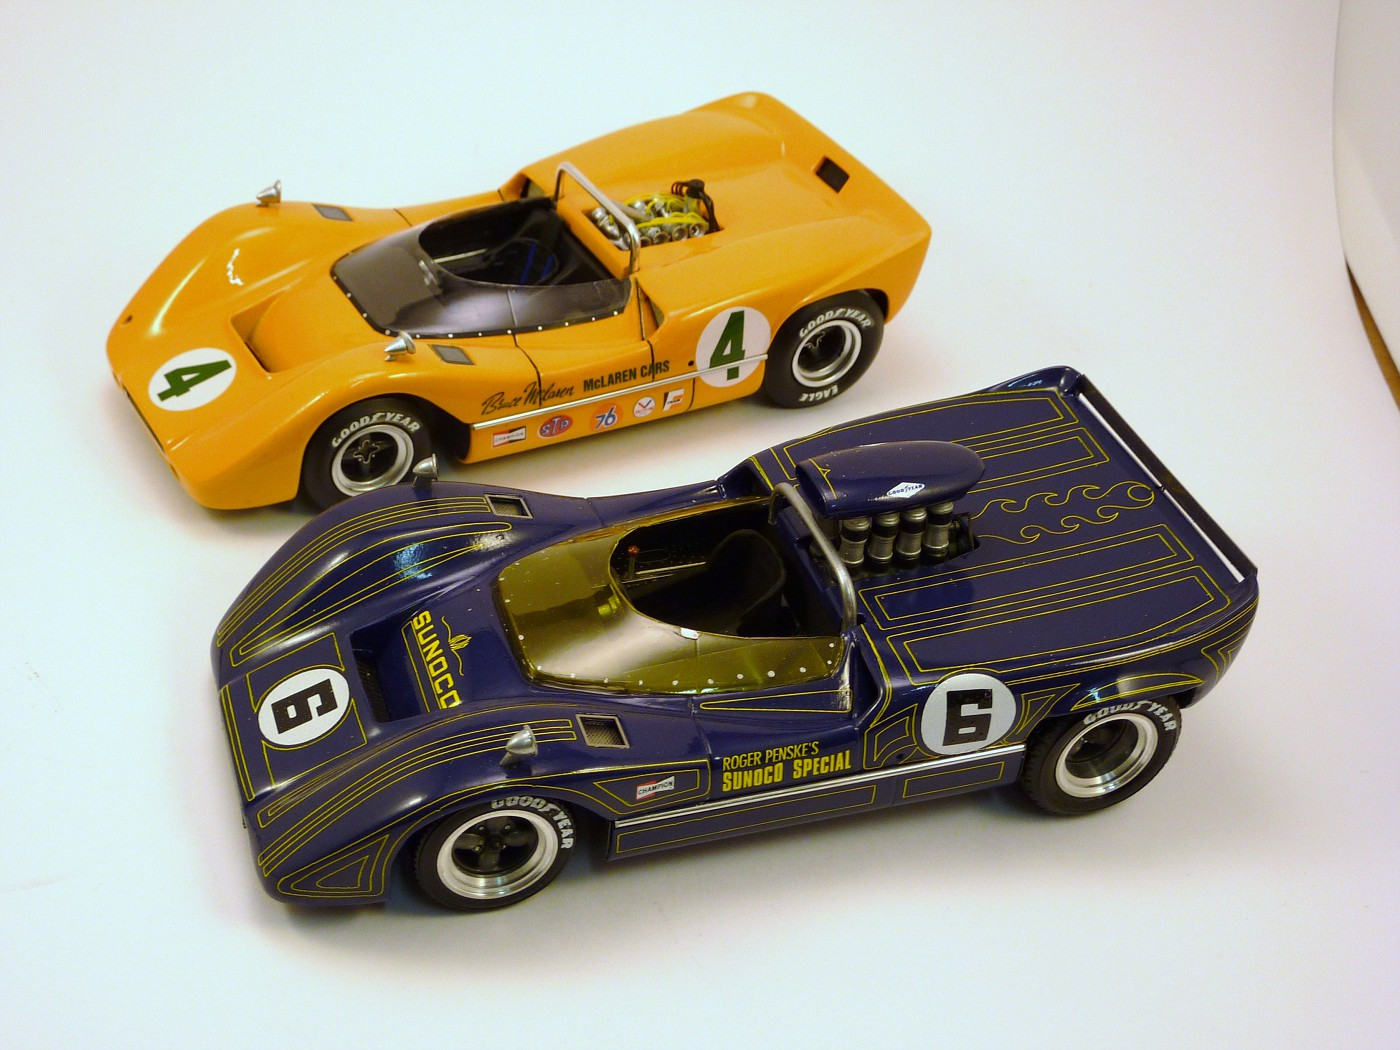 Plateau Can Am  OtosfilalesMcLarenm6afisher027-vi